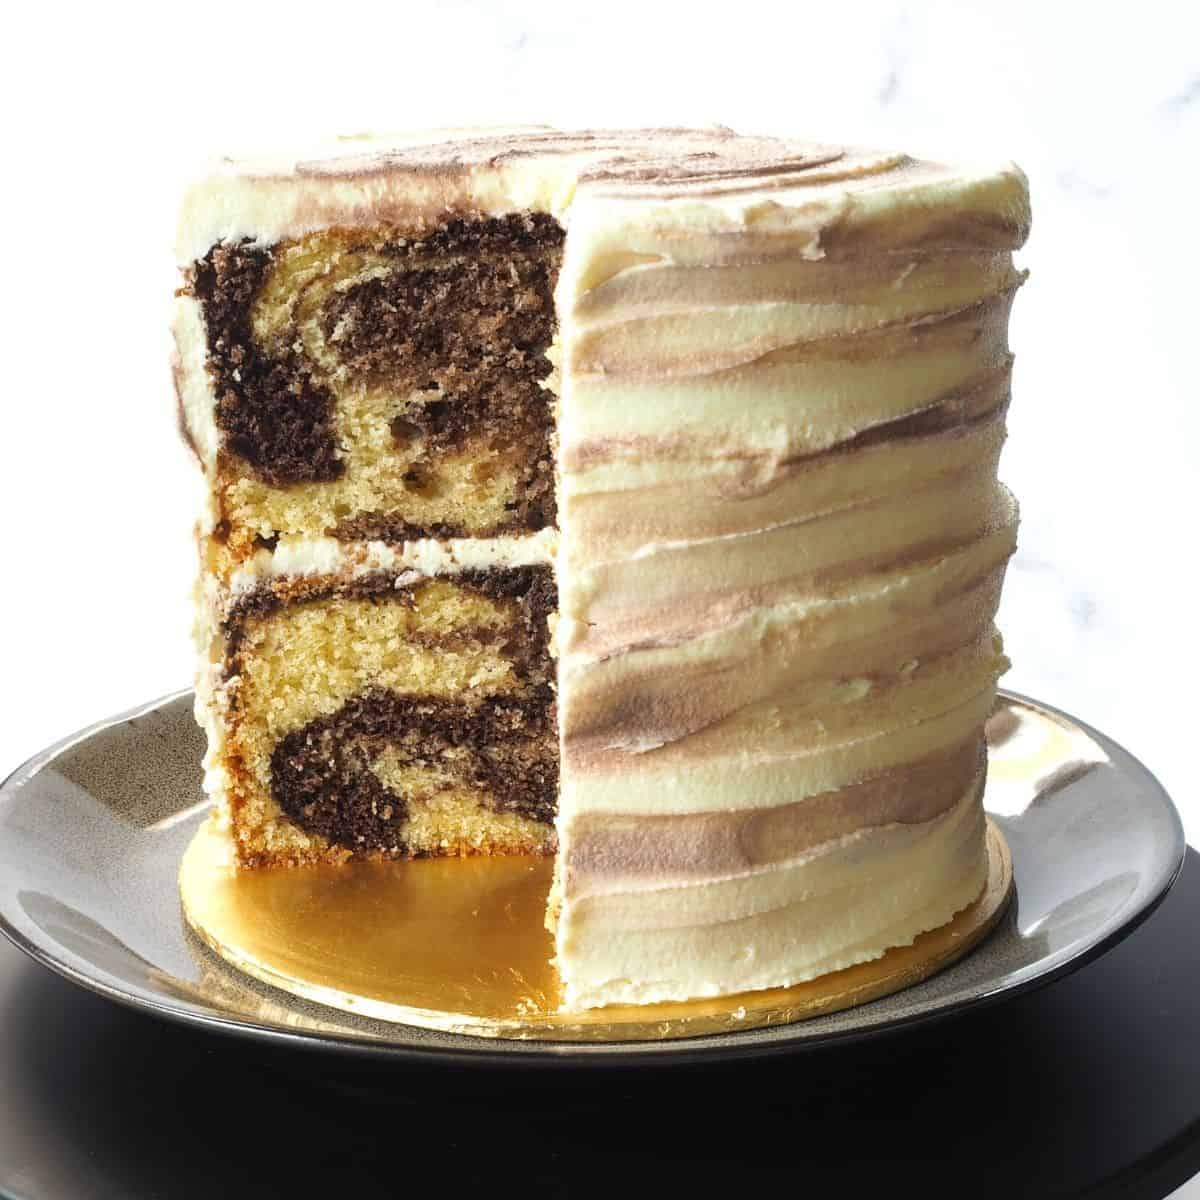 A round marble cake covered in marbled buttercream. A slice of the cake is cut out